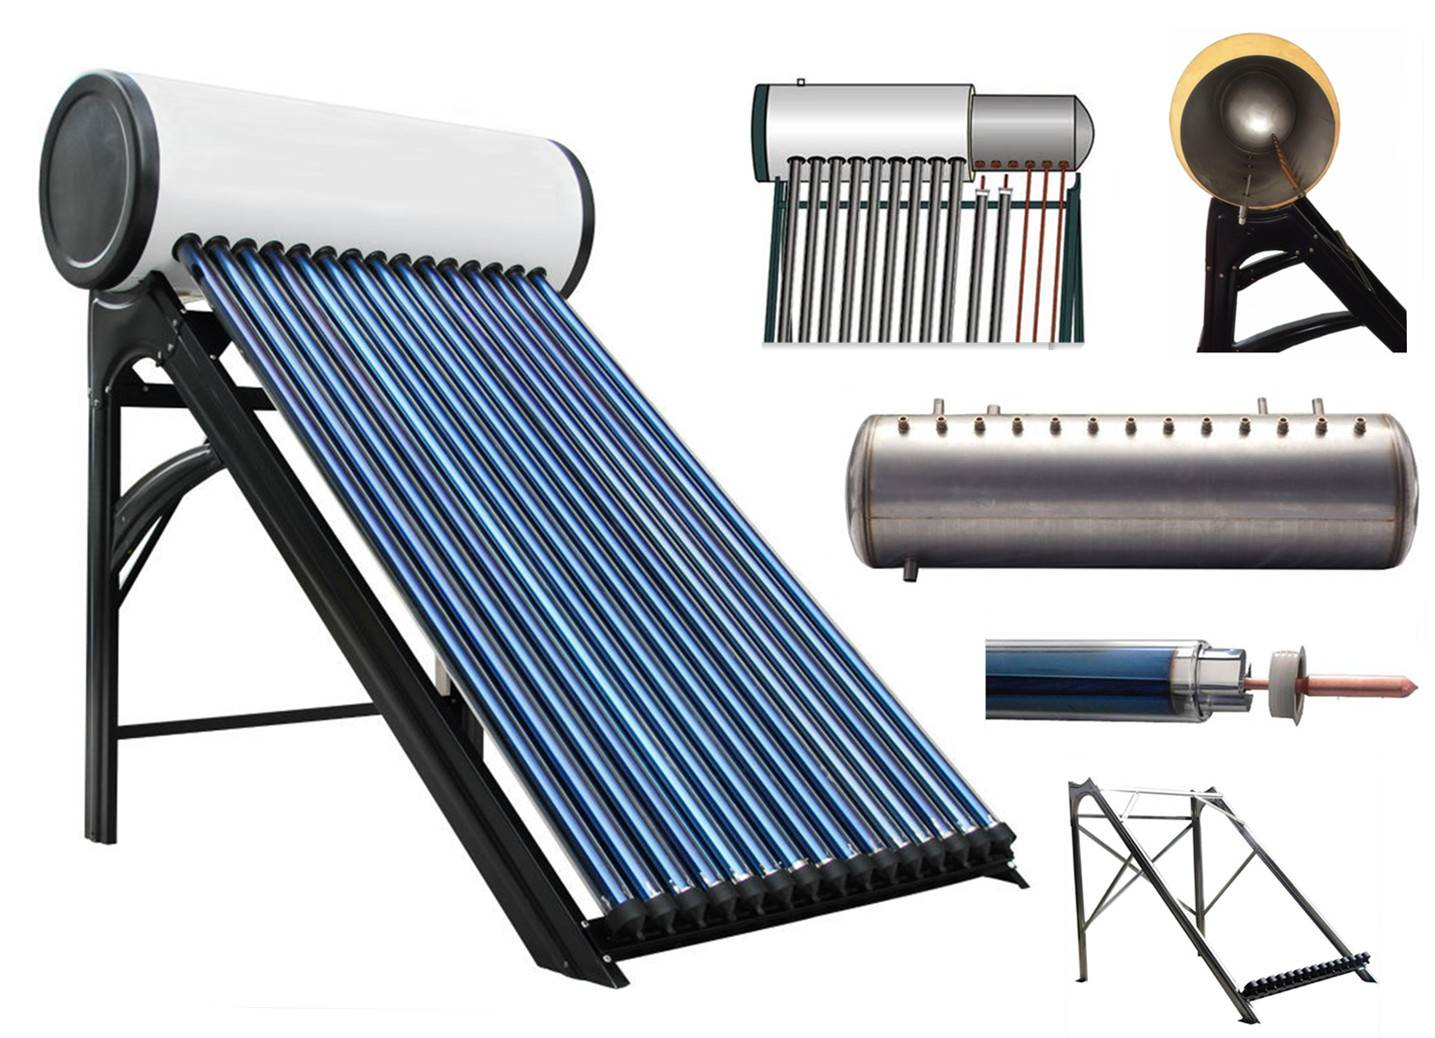 High Pressure Solar Hot Water Heater, Pressurized Solar Hot Water Heaters (Heat Pipe